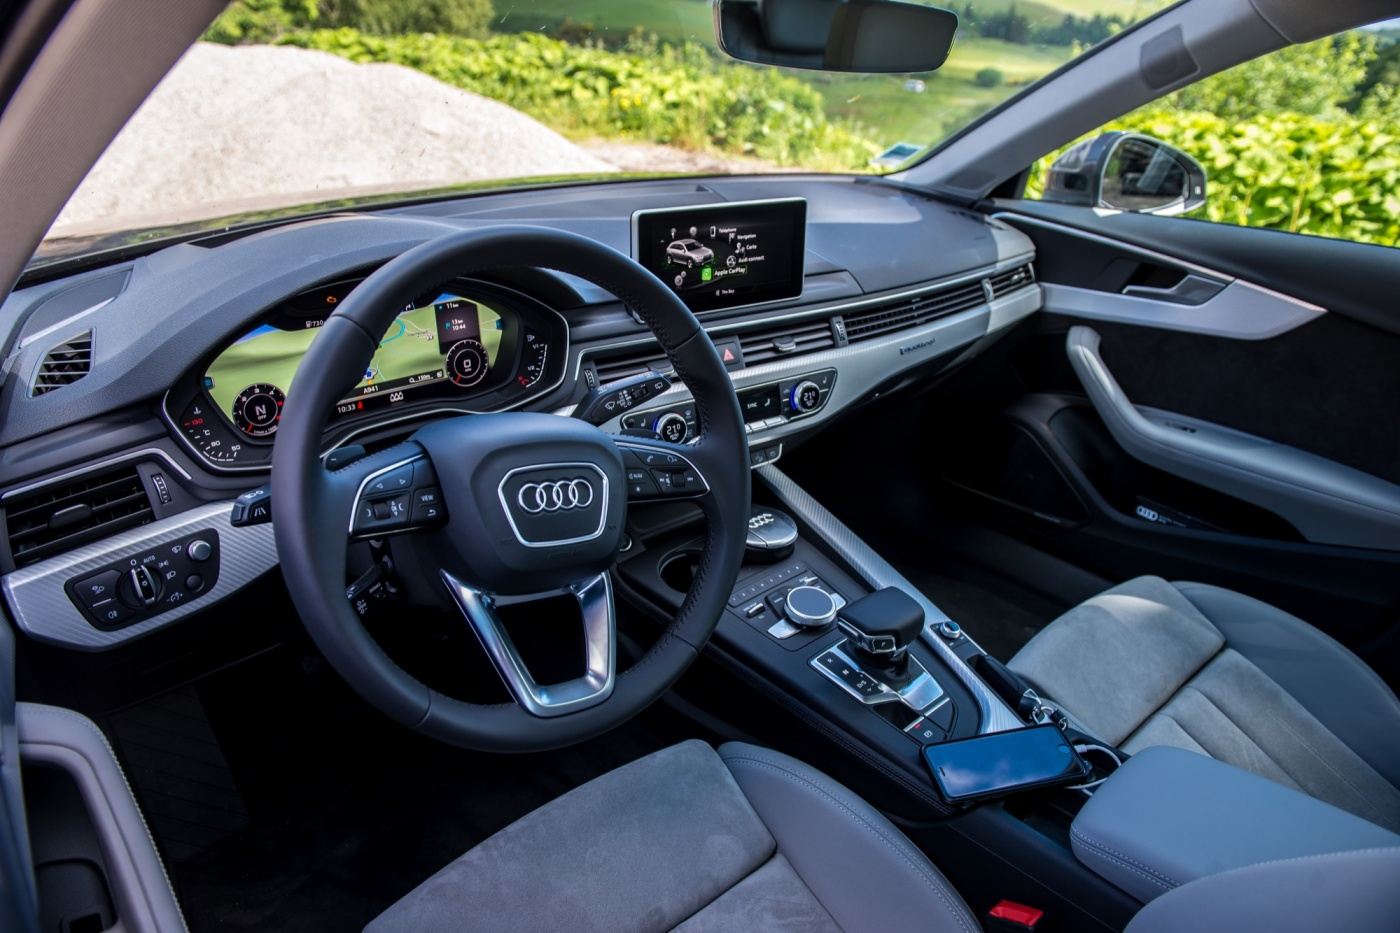 Audi a4 allroad sur les routes d 39 ecosse blog automobile for Interieur audi a4